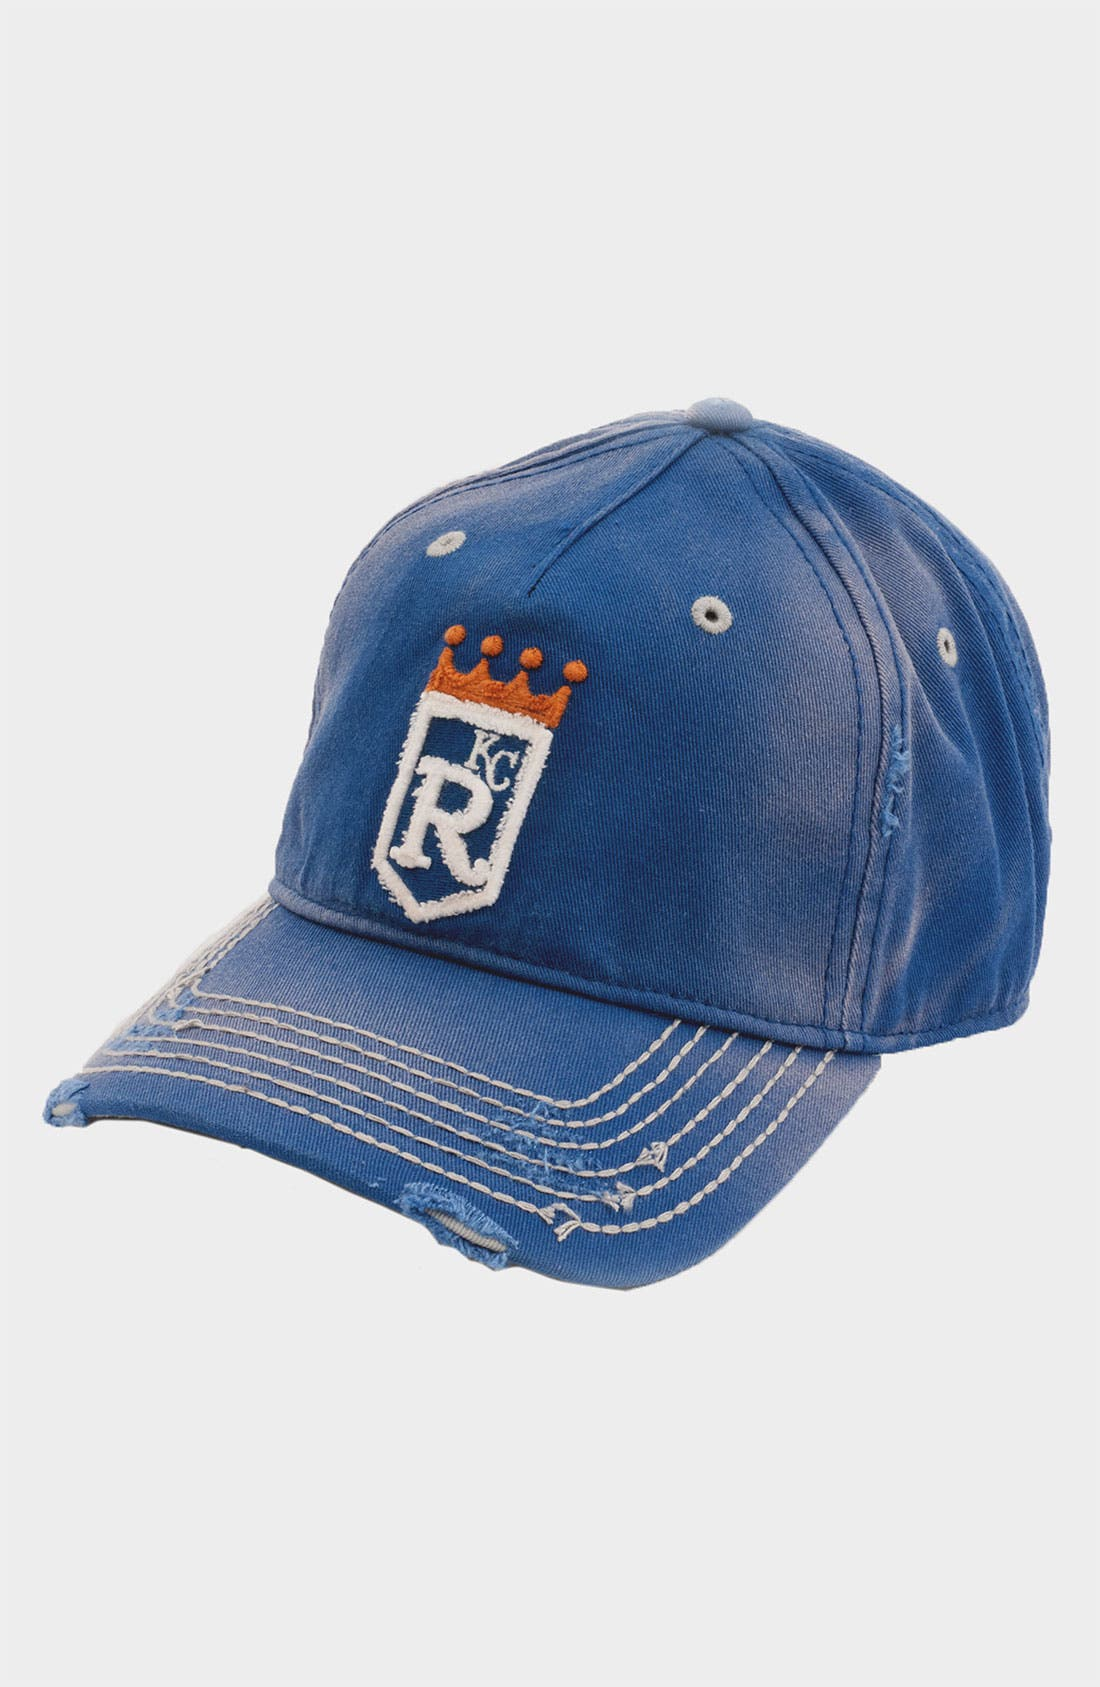 Main Image - American Needle 'Kansas City Royals' Baseball Cap